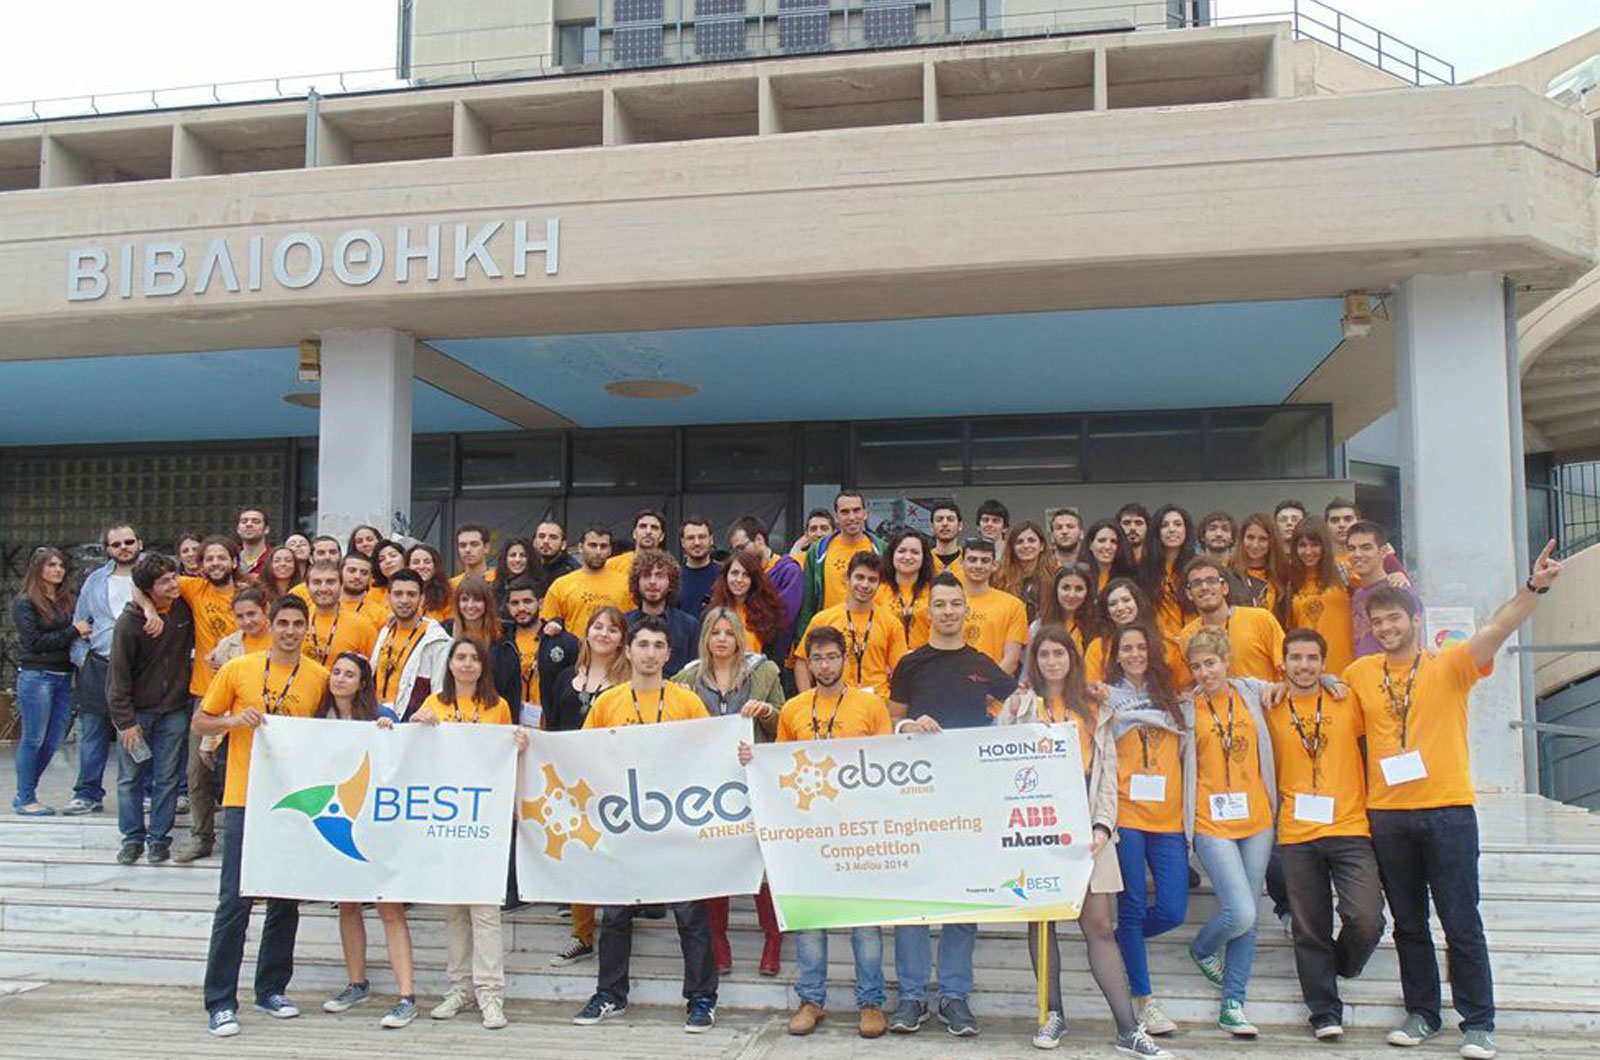 Sponsorship for the EBEC Athens 2014 competition